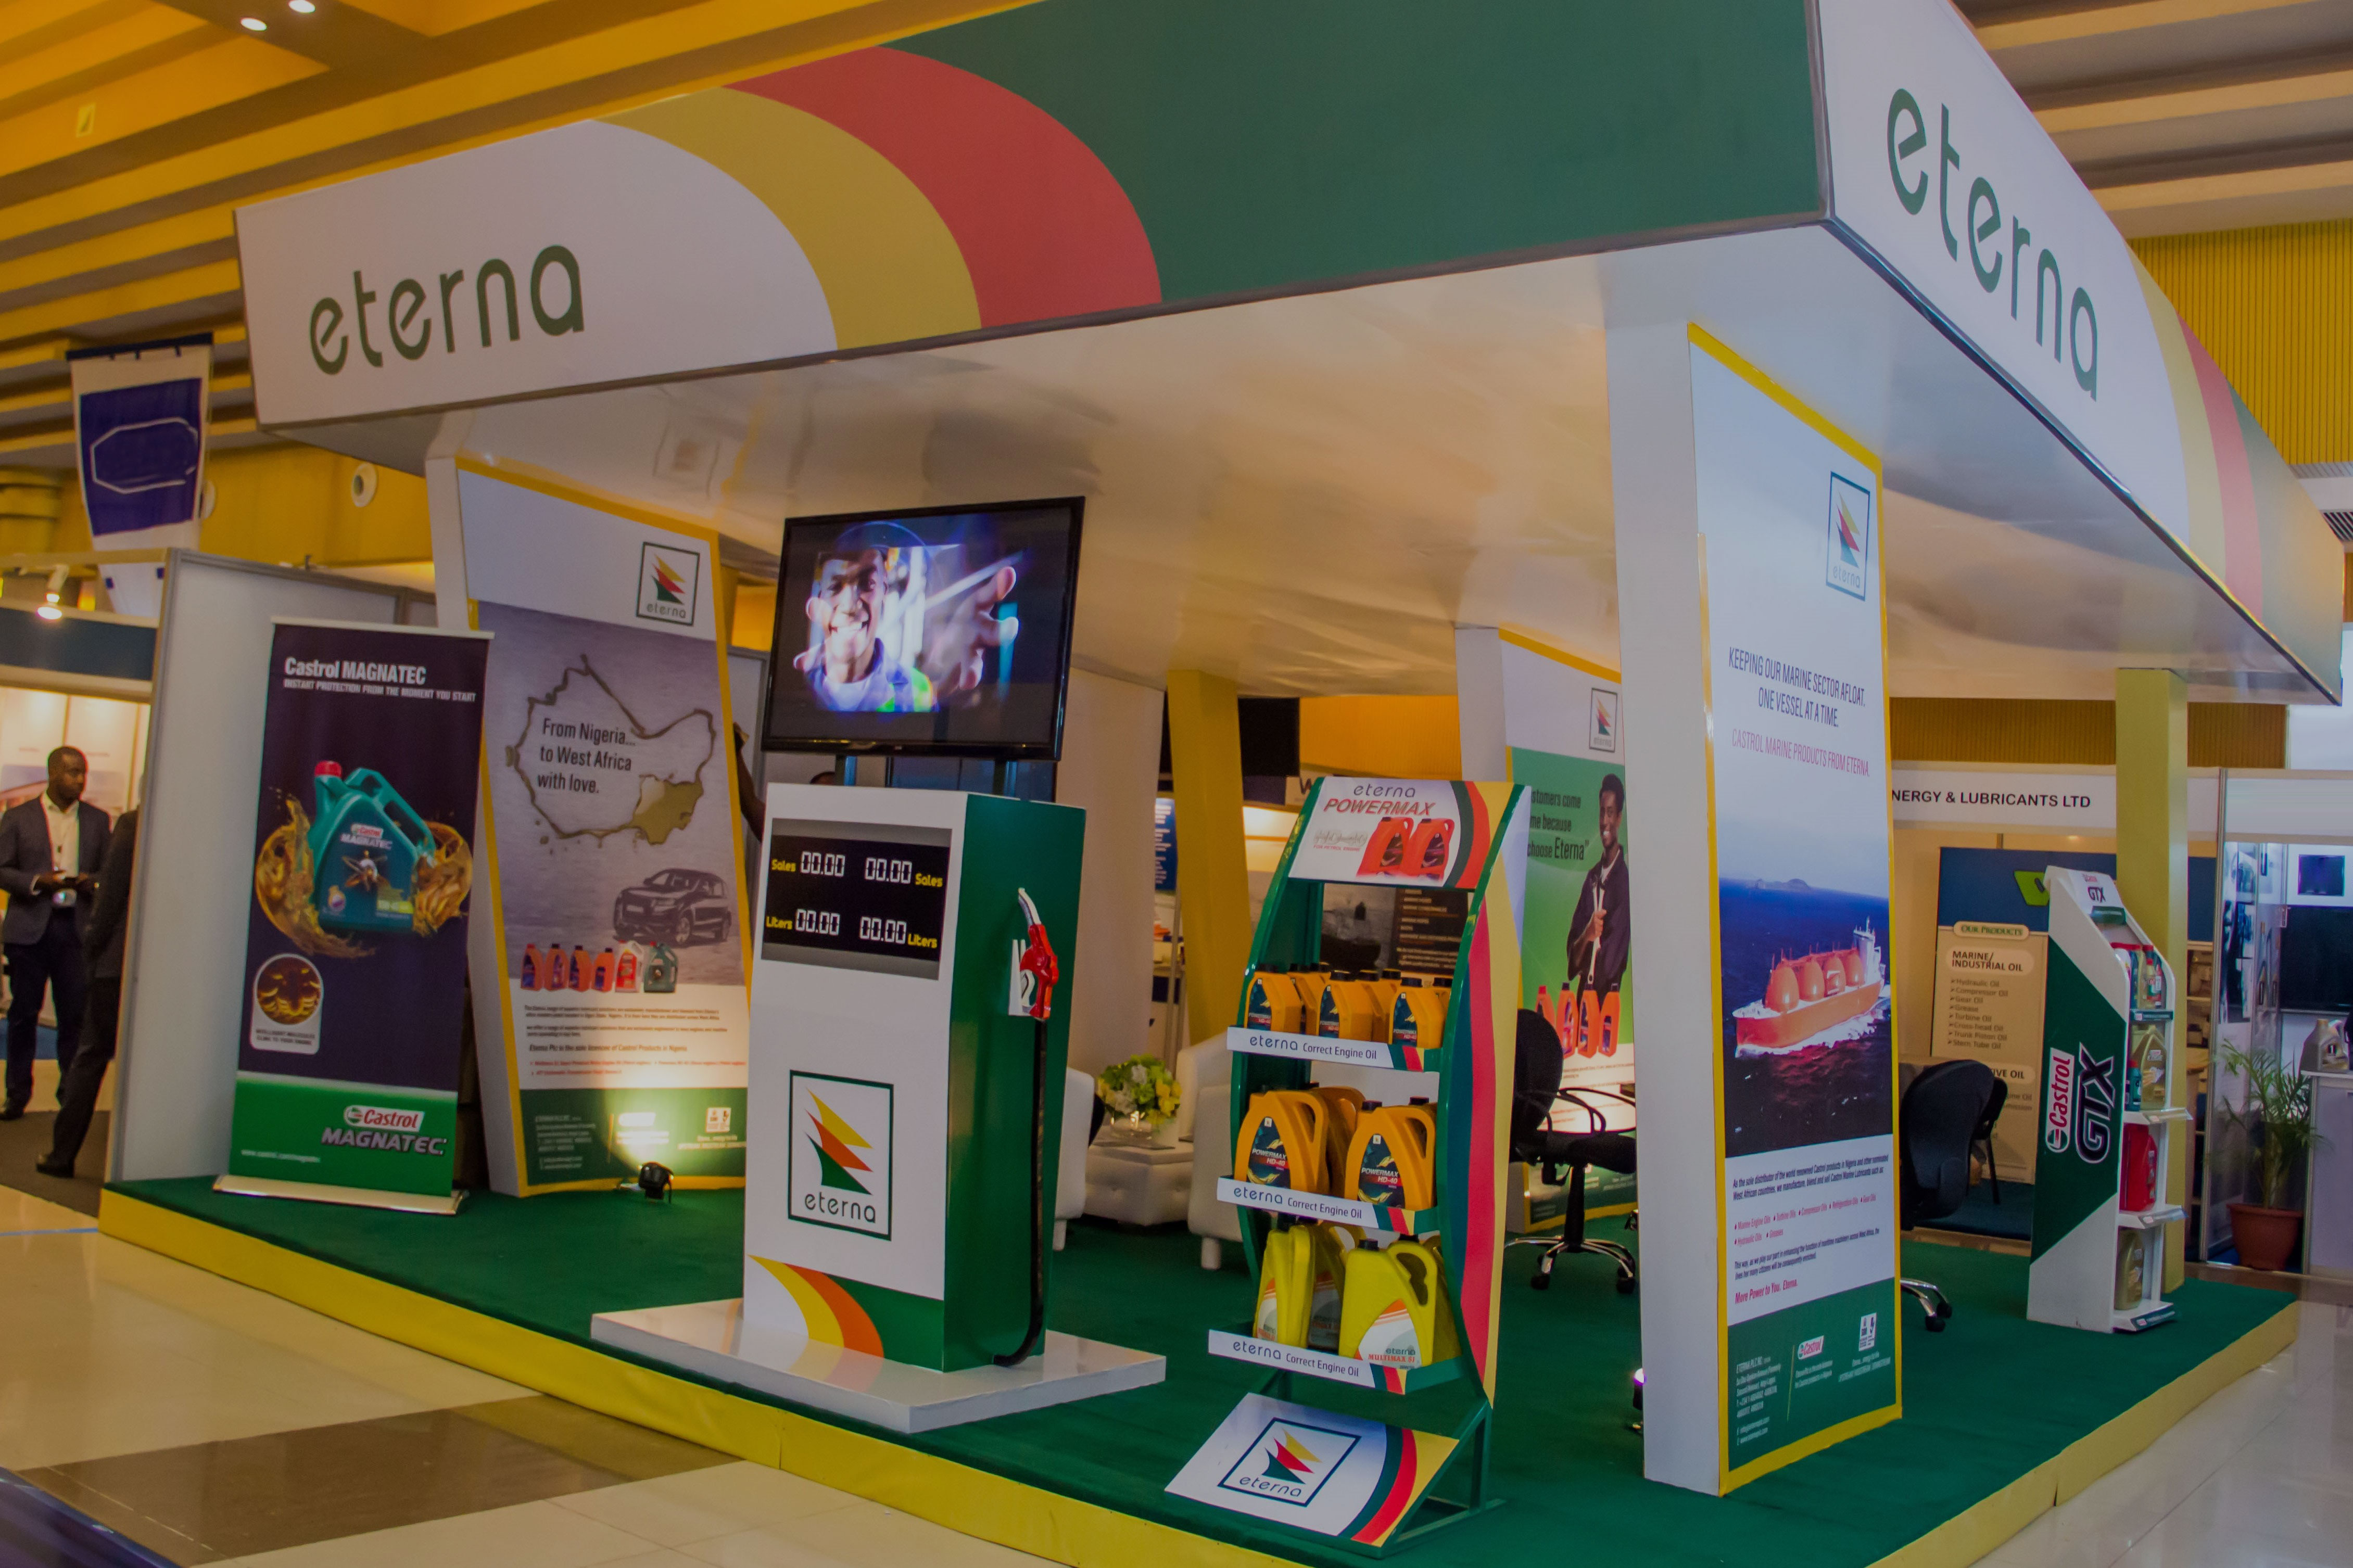 Eterna Plc - Welcome to our official website